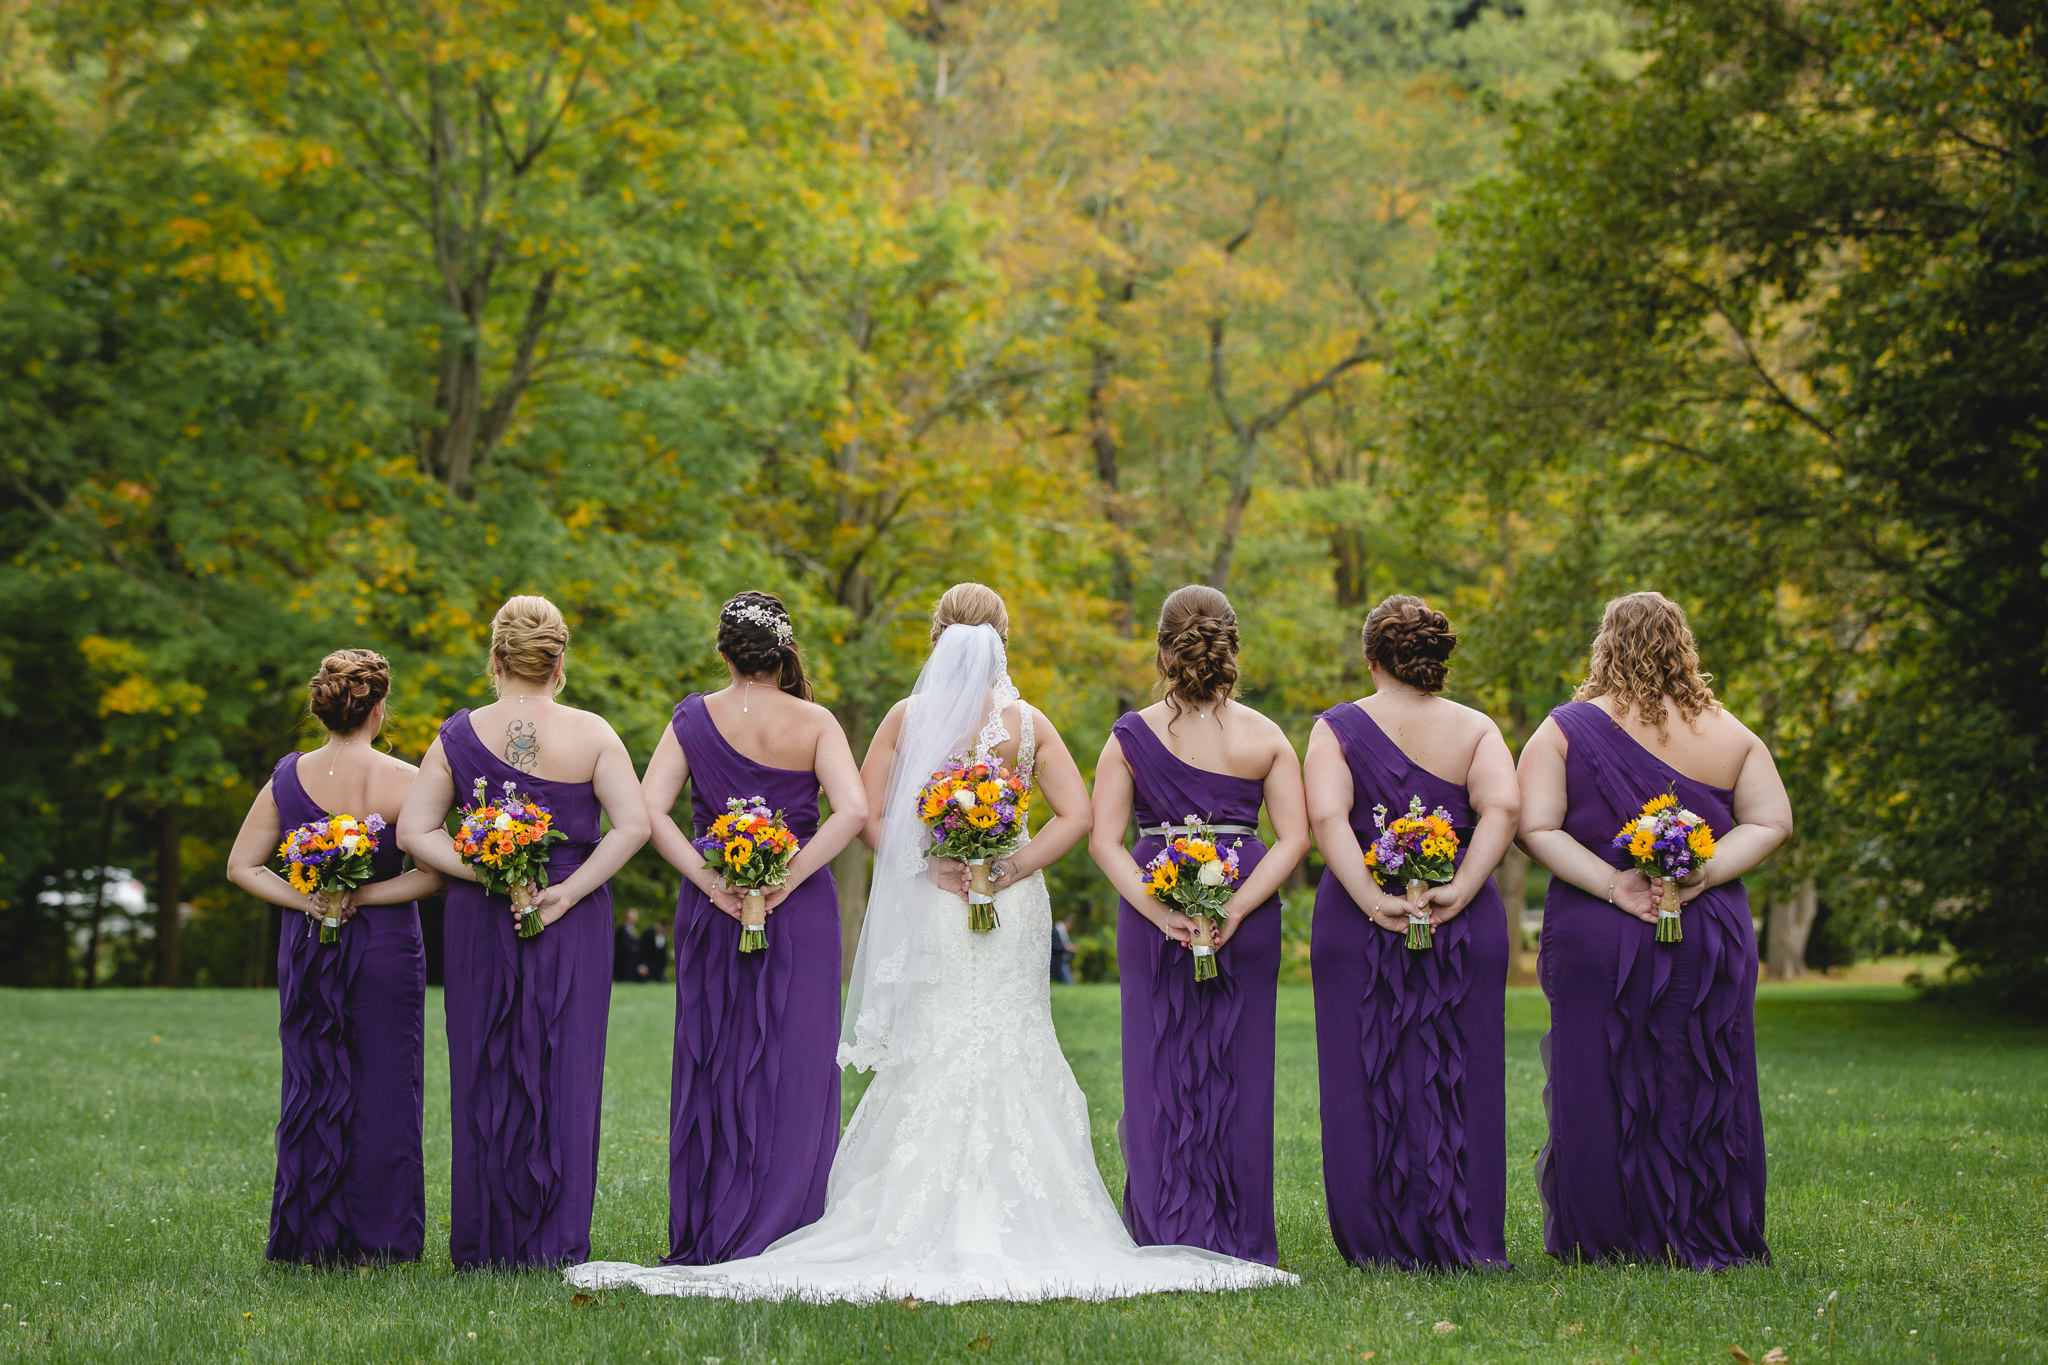 Bride and bridesmaids hold their bouquets by Patti's Petals Flower Shop